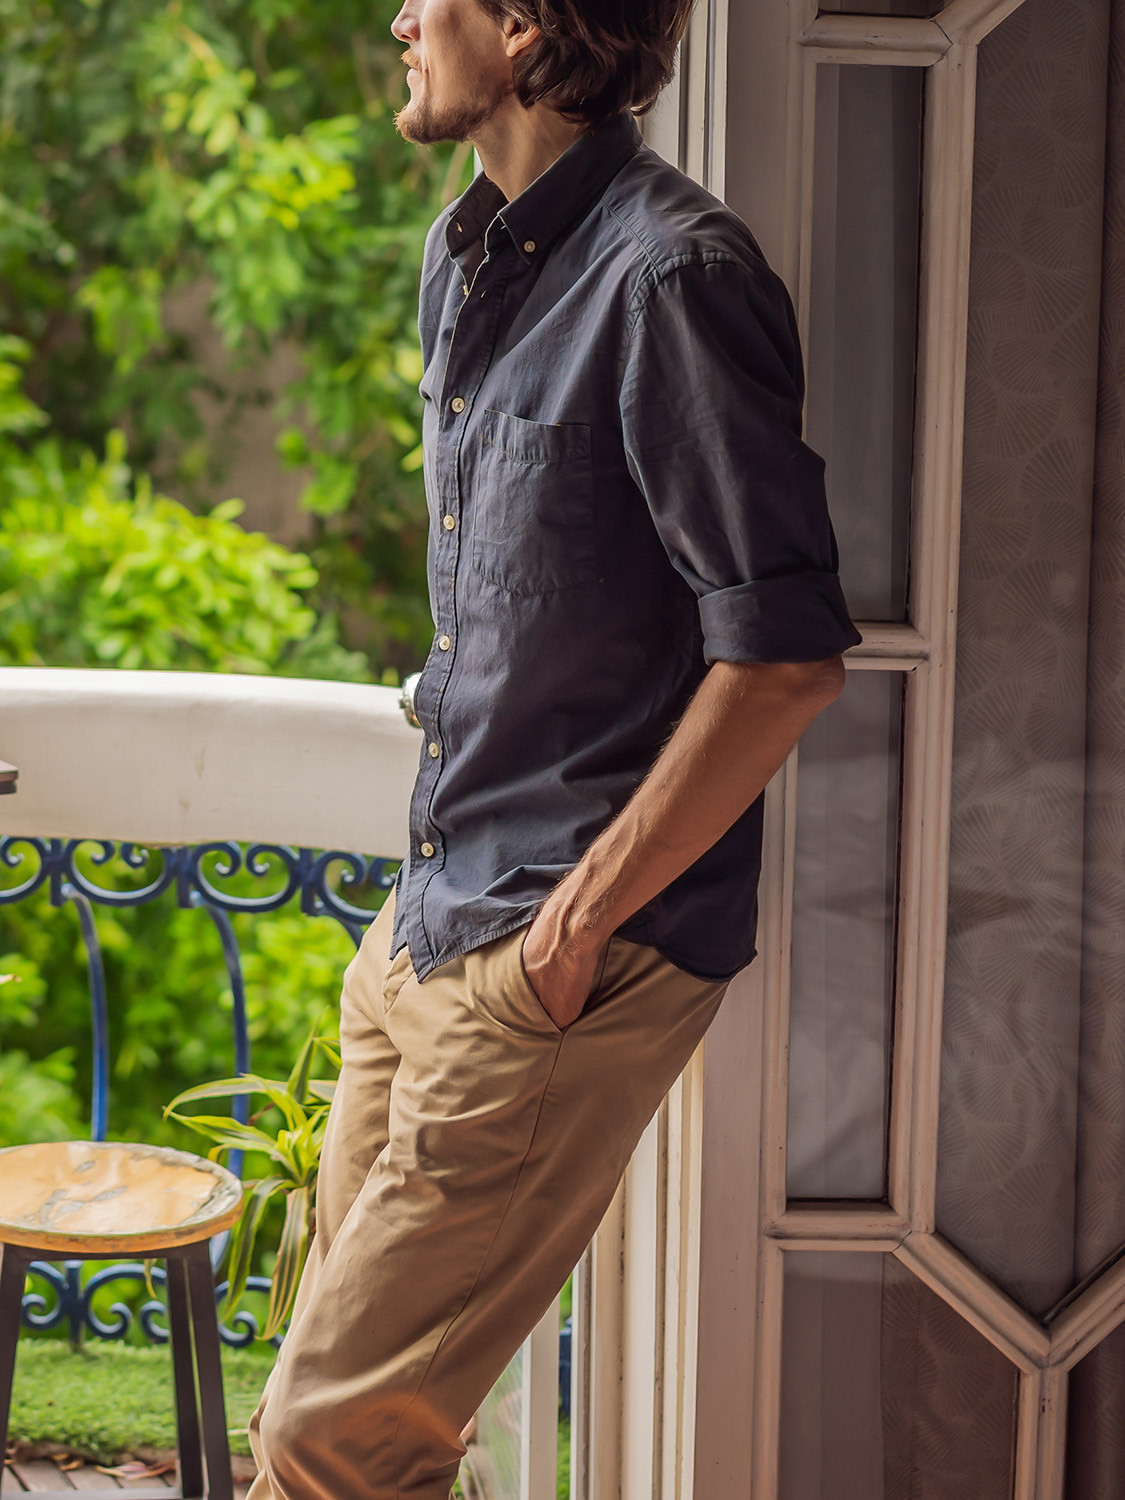 Men's outfit idea for 2021 with navy plain casual shirt, neutral chinos, brown lace-up leather boots. Suitable for spring, summer and fall.